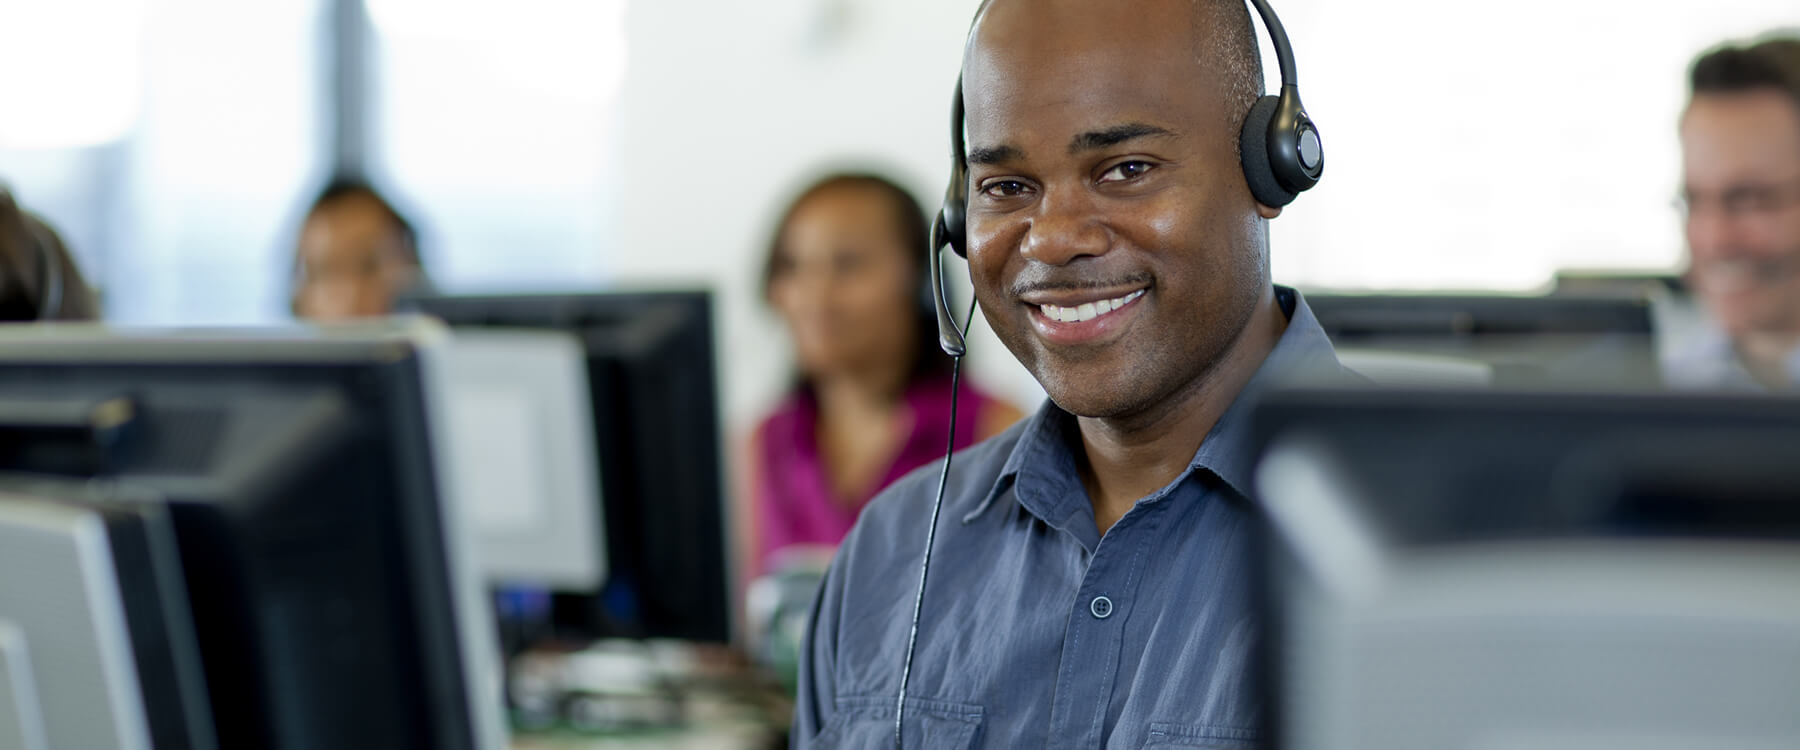 List Of Call Centers Call Center Careers And Job Opportunities At T Careers